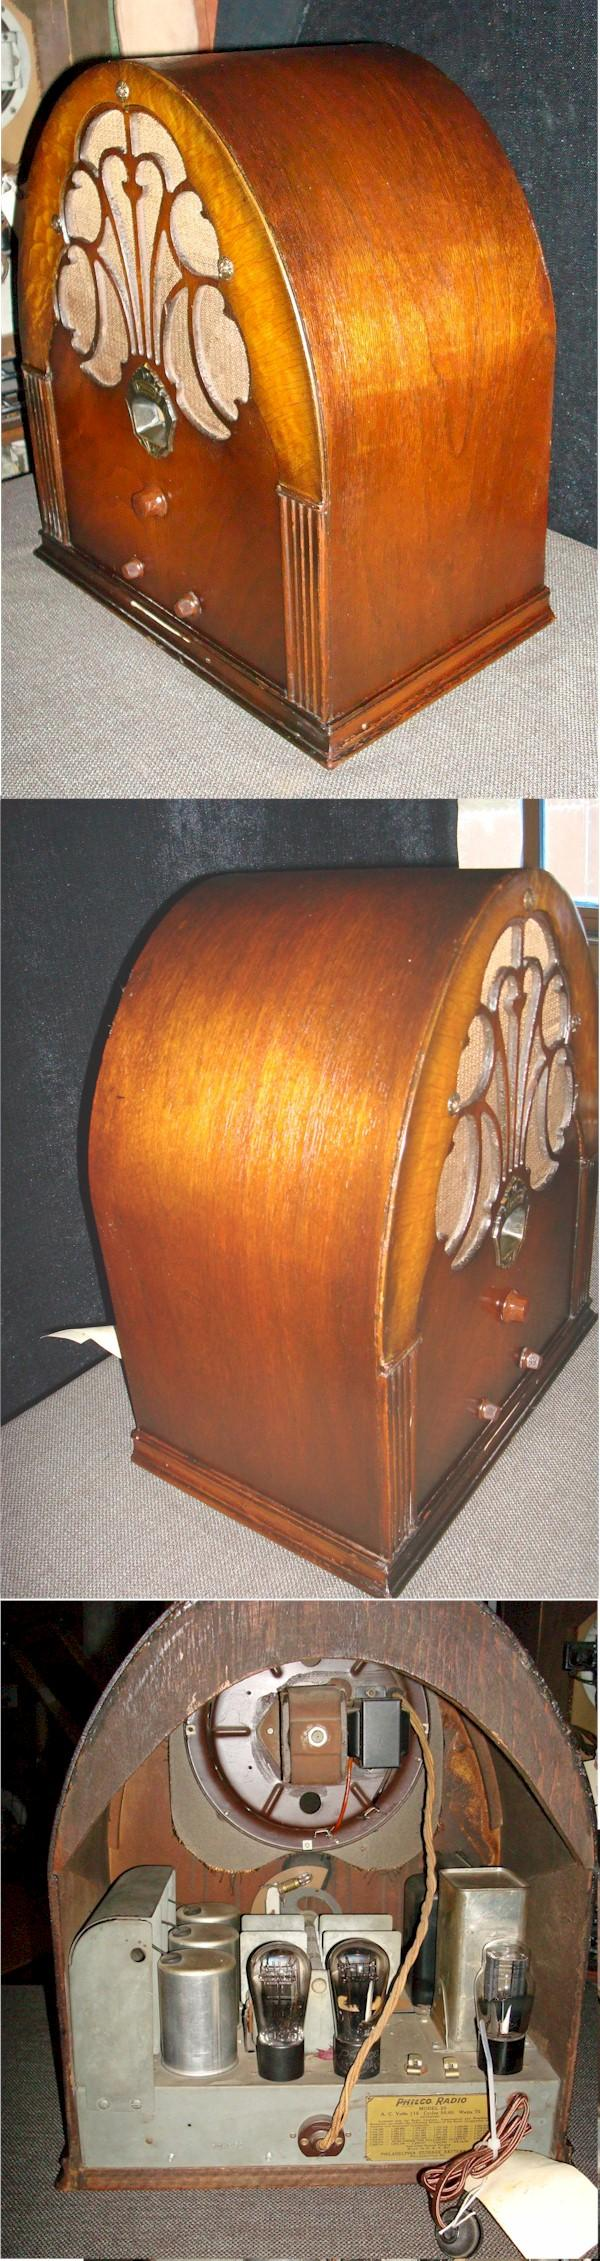 Philco 20 Deluxe Cathedral (1930)